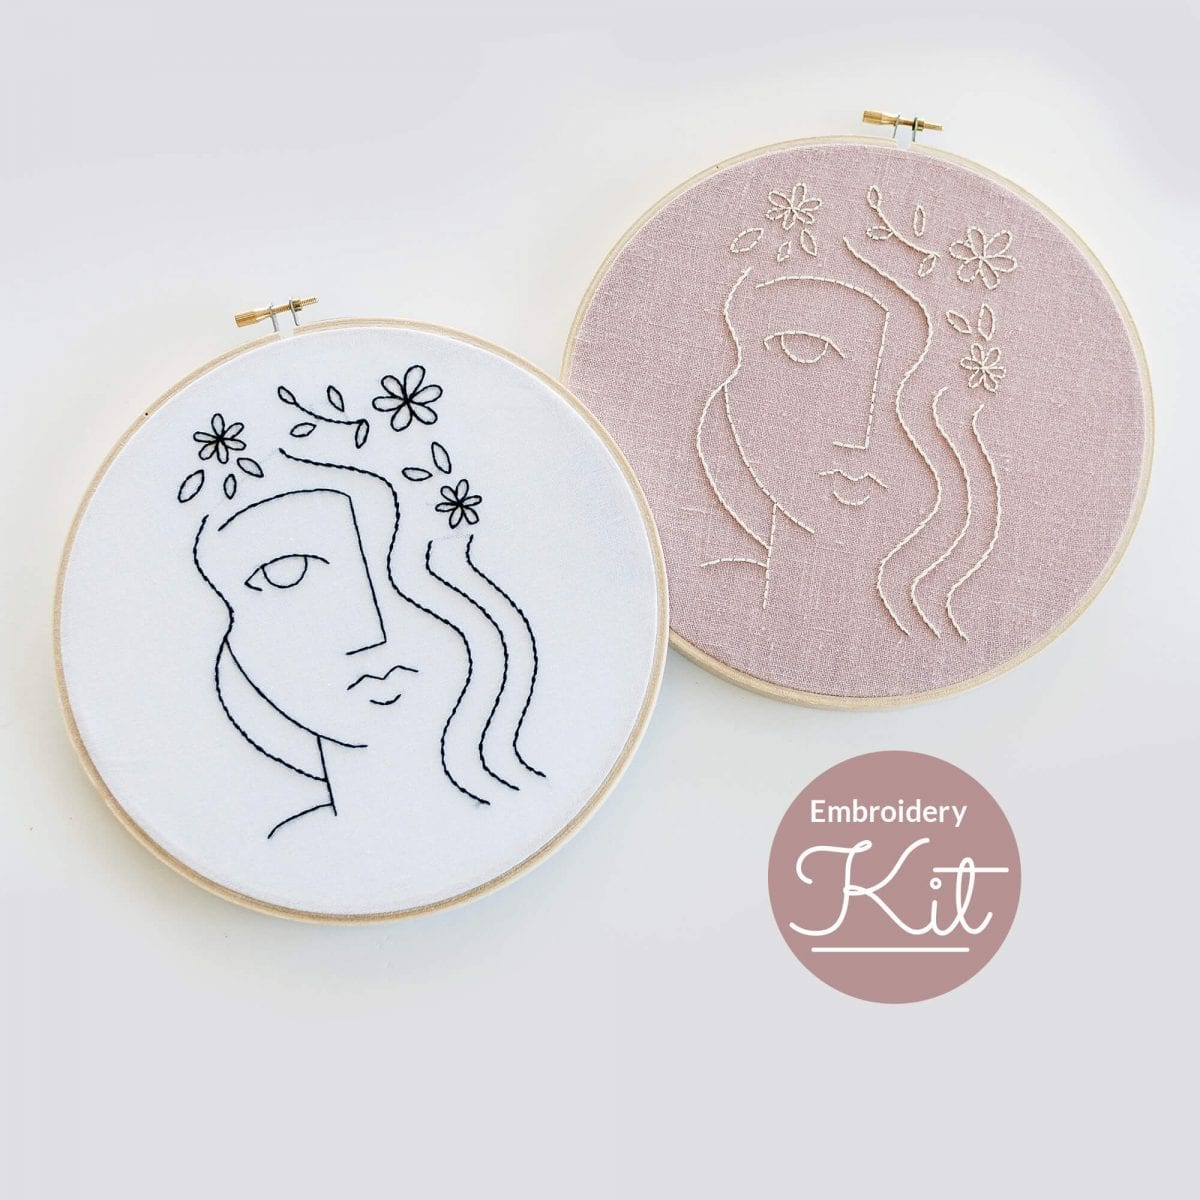 Flora Embroidery kit & Pattern